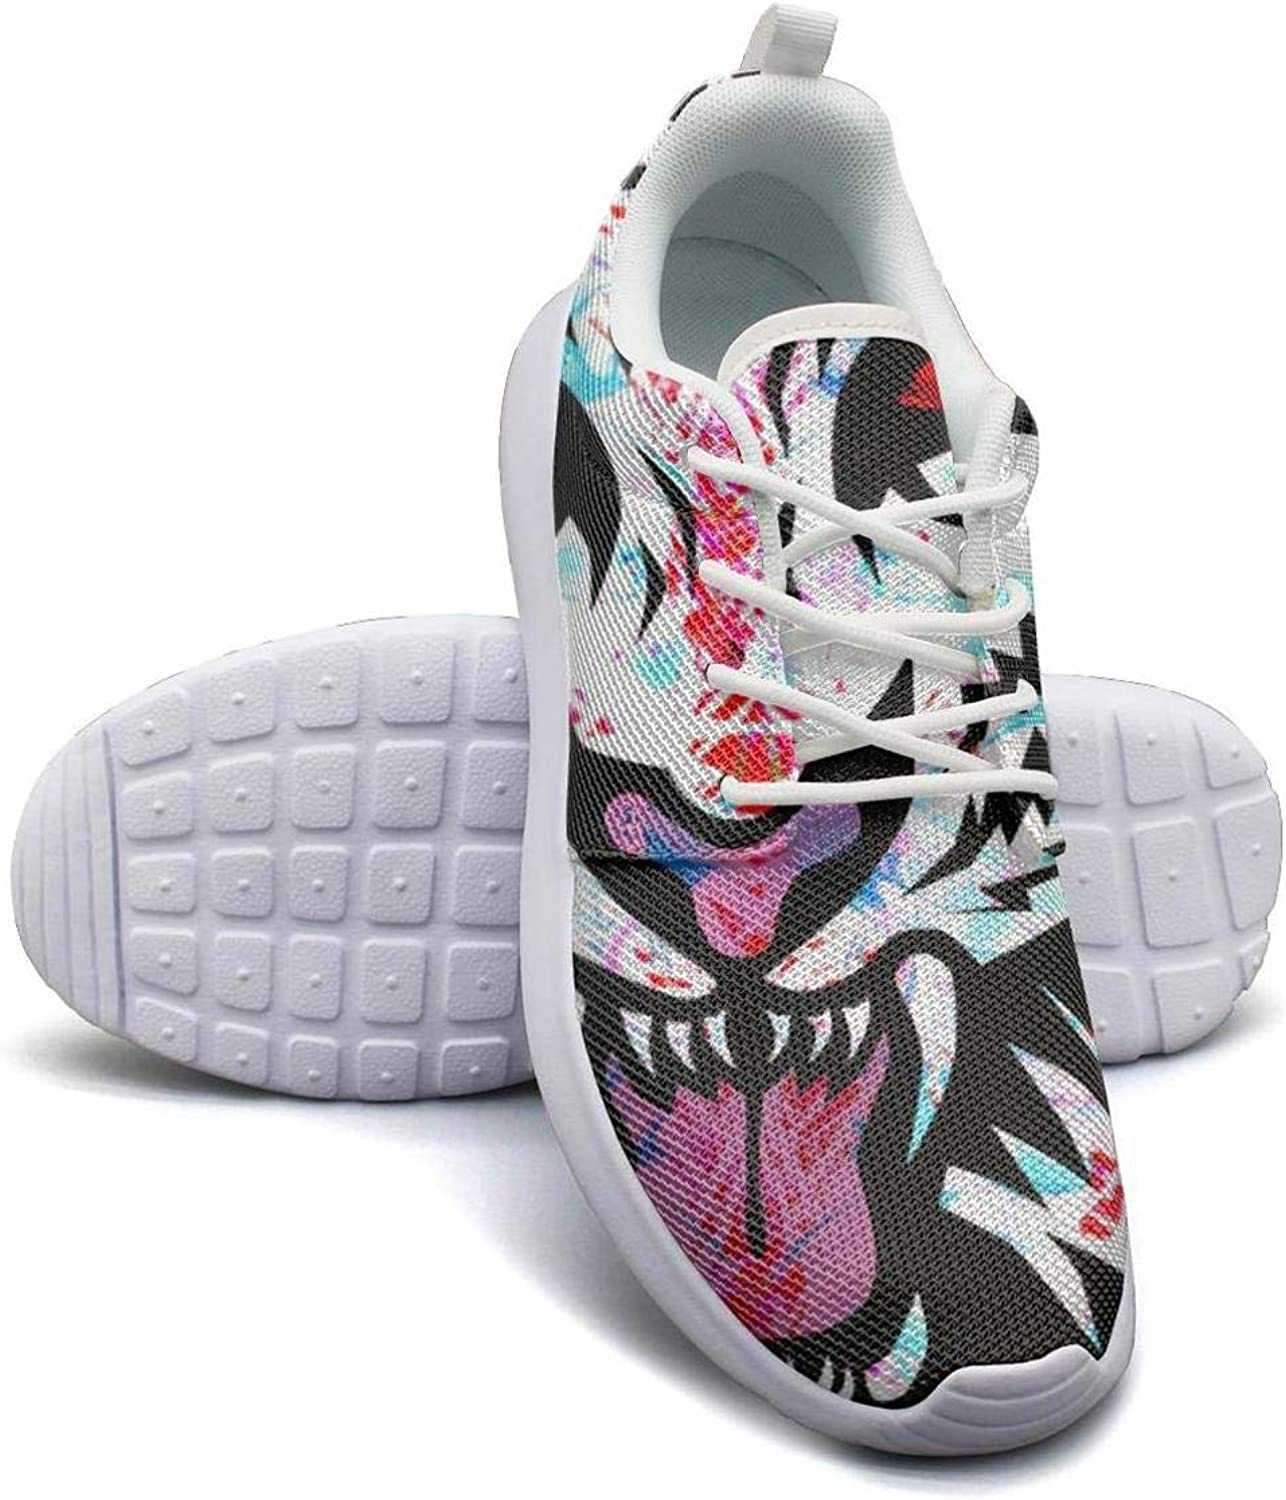 Gjsonmv Evil White Tiger face mesh Lightweight shoes for Women Cool Sports Hiking Sneakers shoes